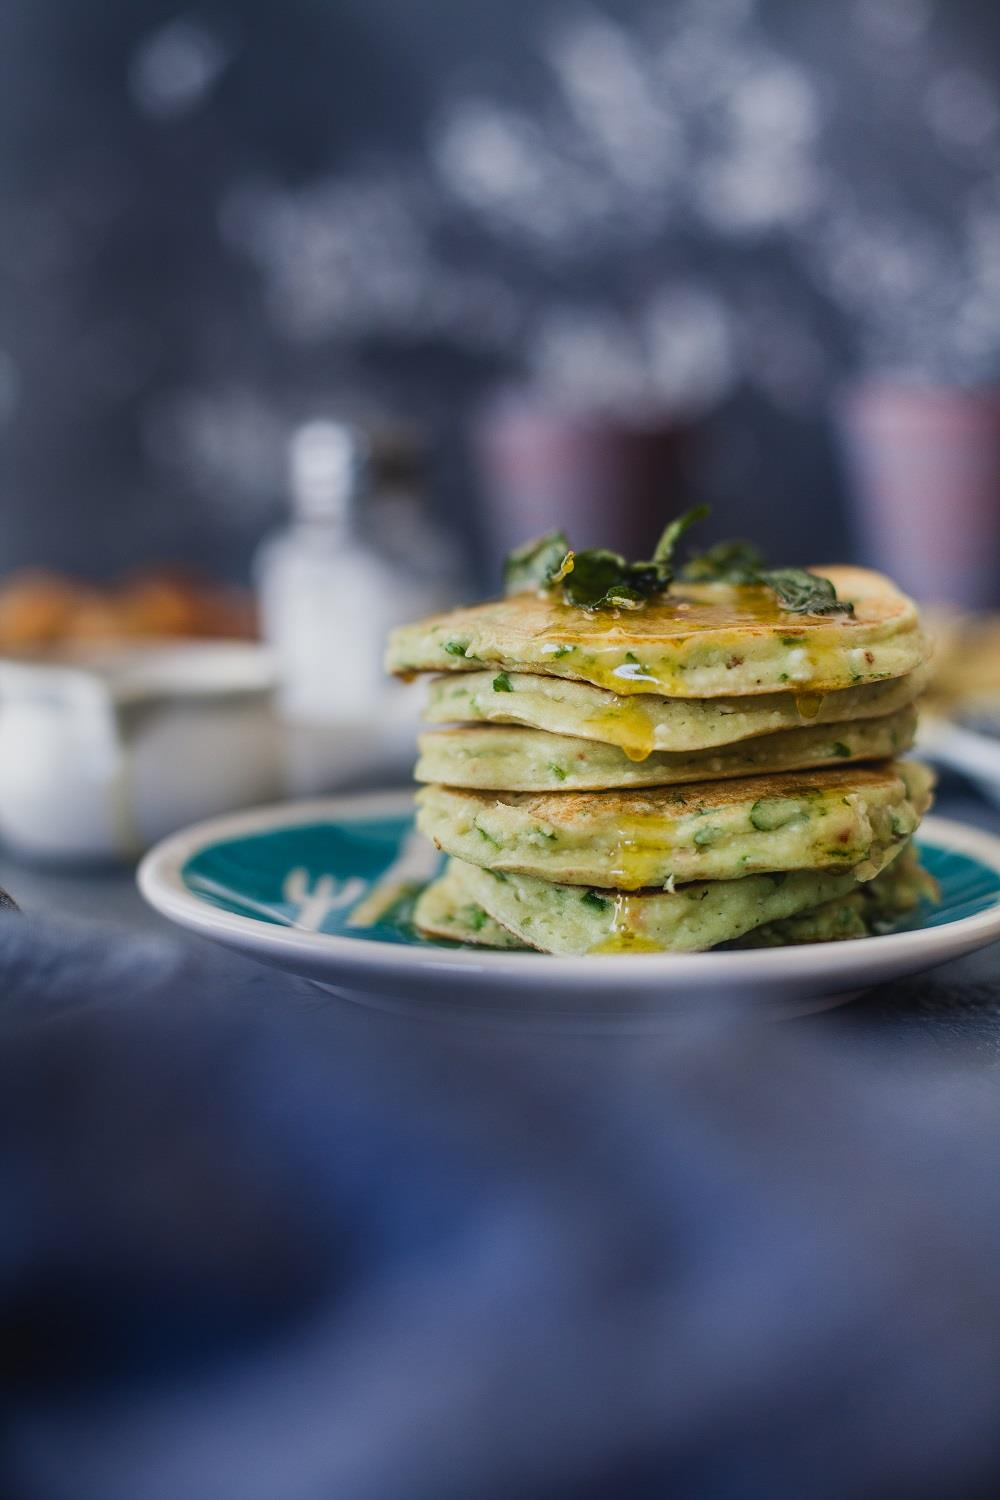 Add an unconventional twist to the good old fashioned pancakes with spinach and ricotta. Kankana Saxena of Playful Cooking shares her simple and enjoyable breakfast recipe.